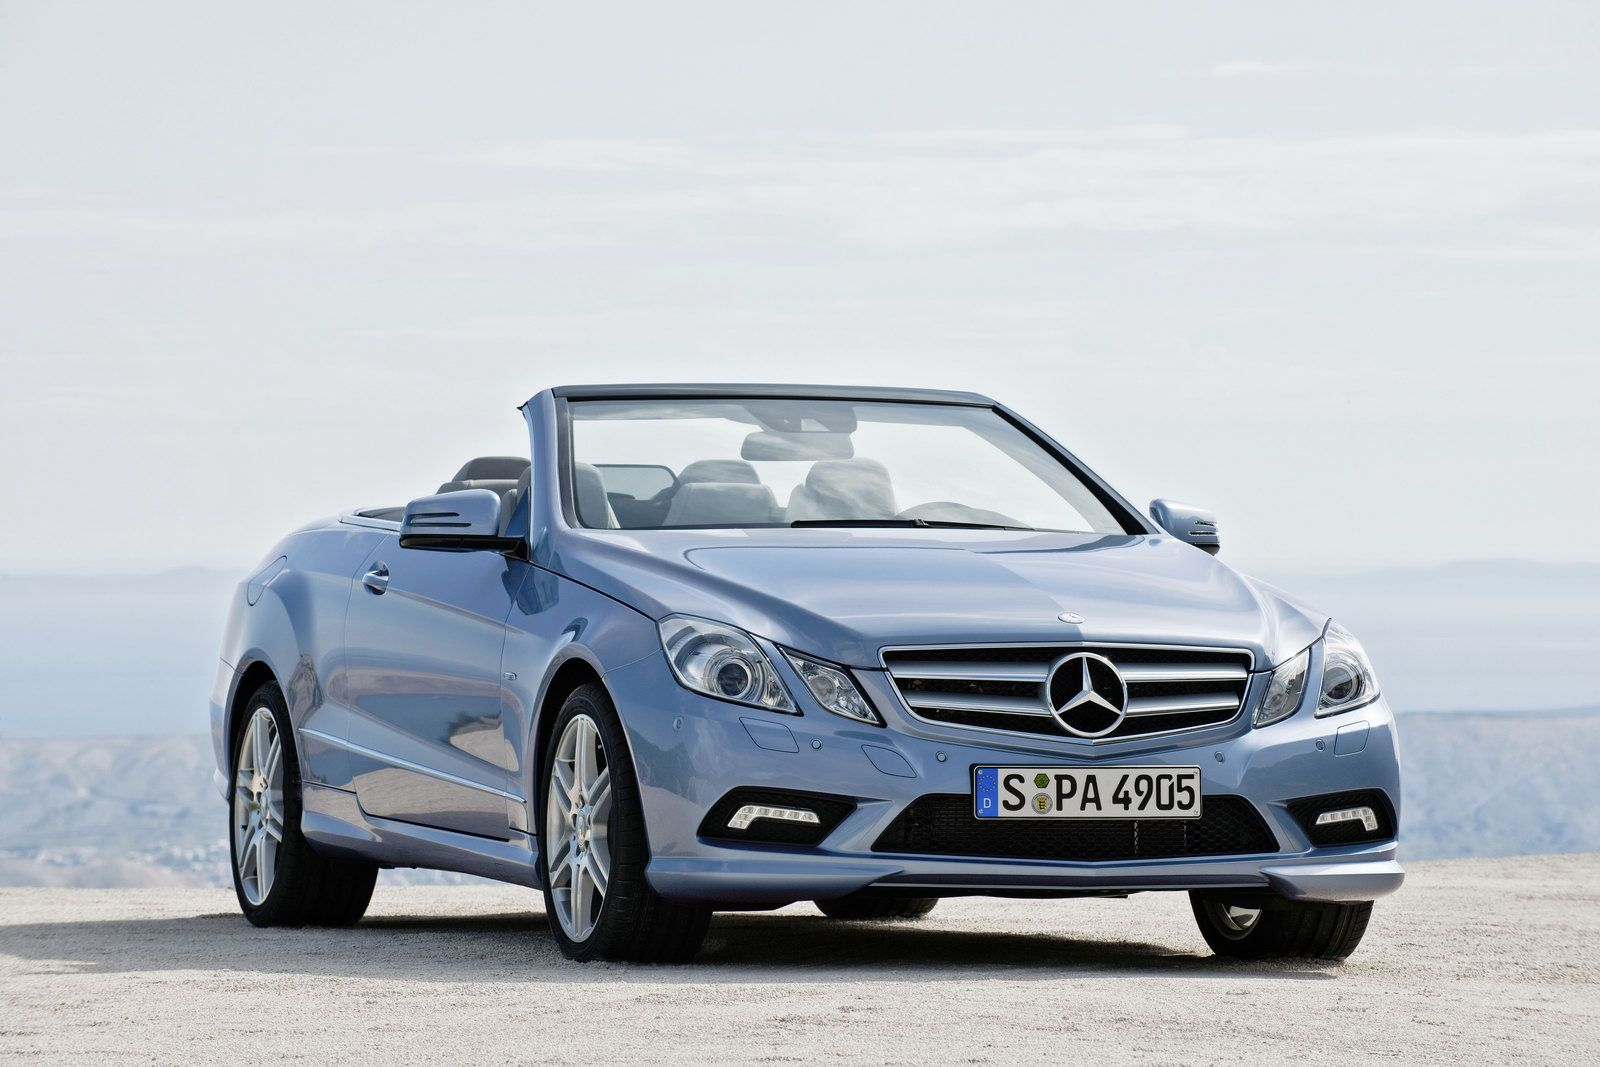 Mercedes Benz Cars Mercedes Benz E Class Luxury Car Price In